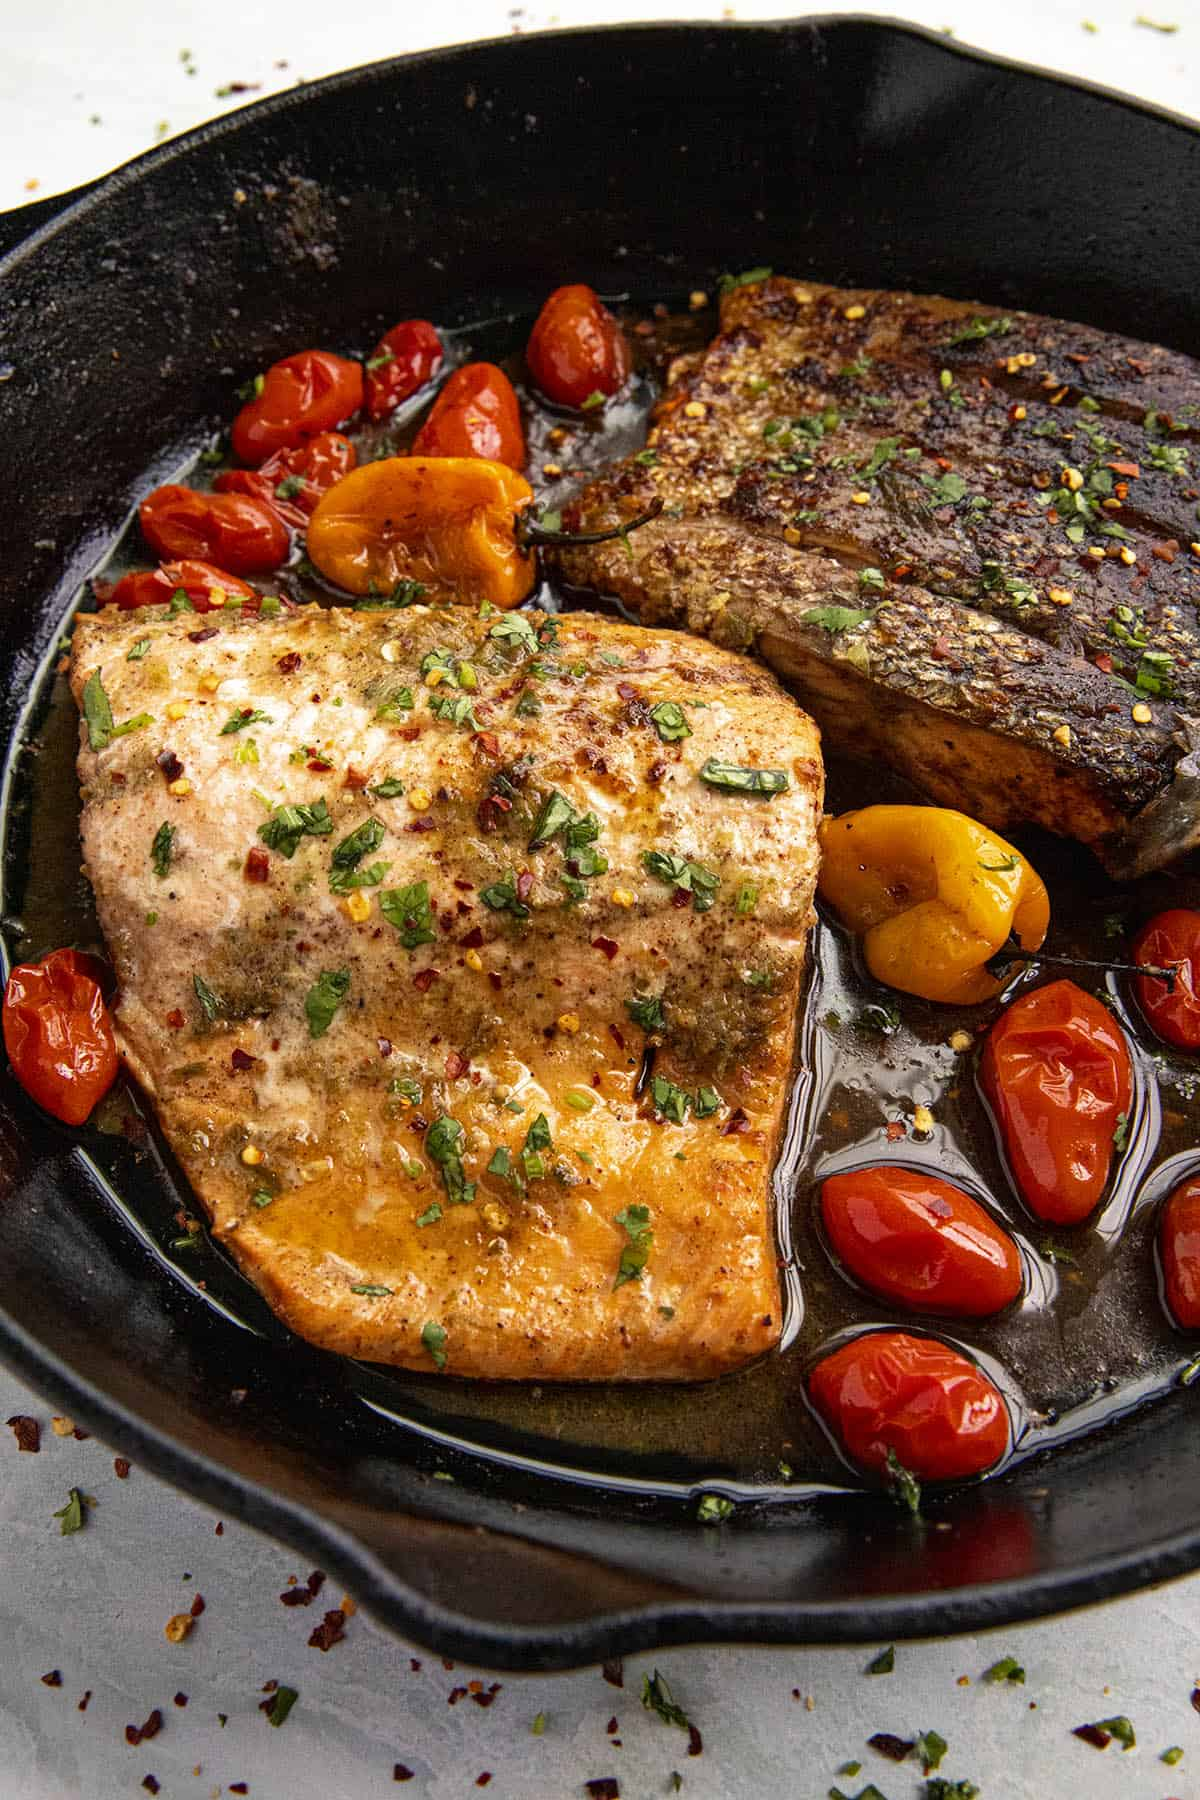 Two pieces of Jerk Salmon in a hot pan with blistered tomatoes and Scotch Bonnet